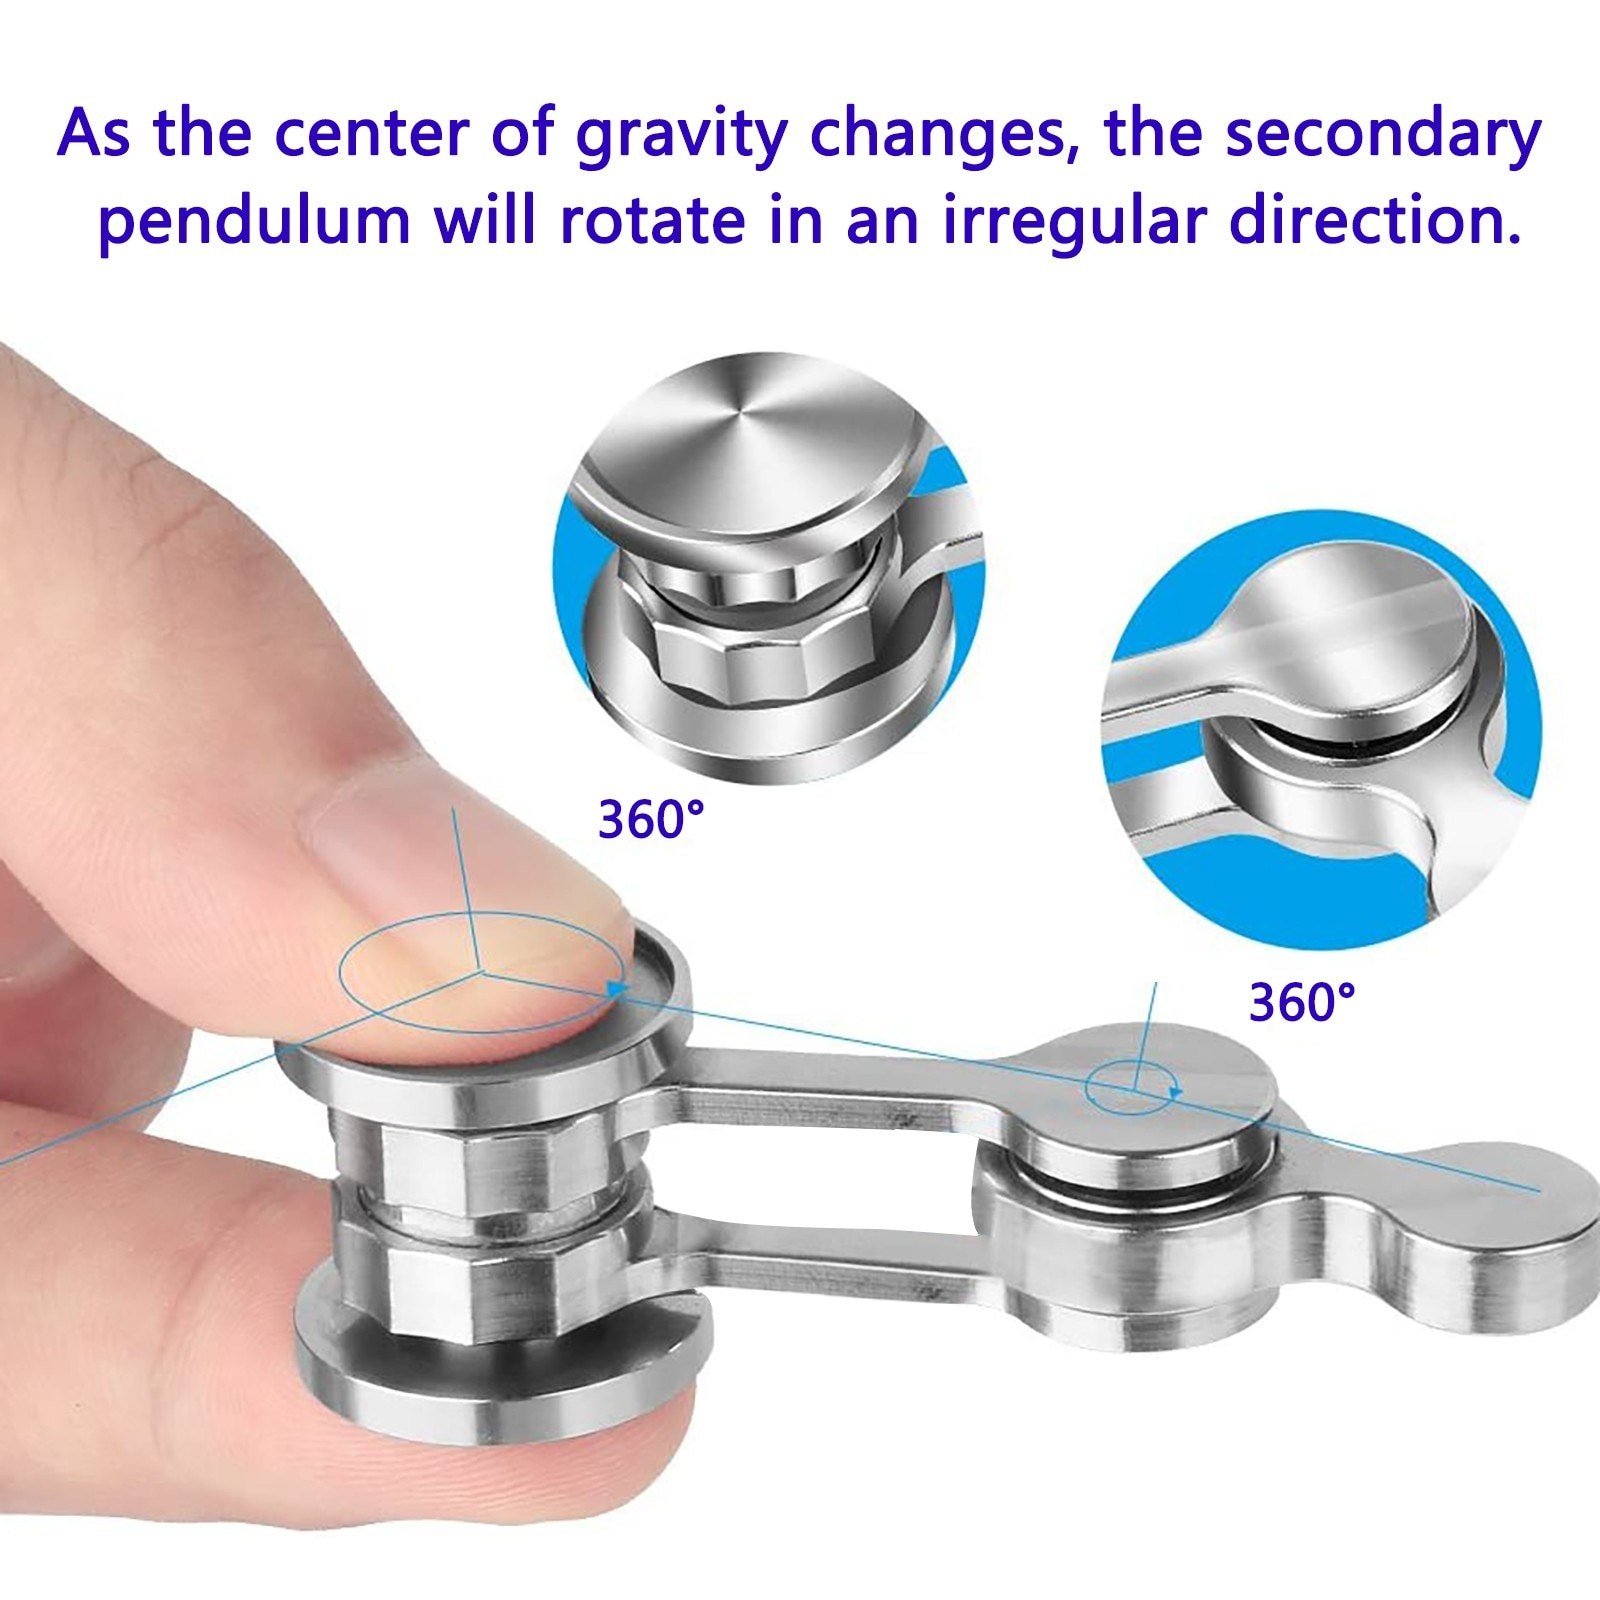 Fidget Toys Metal Spinner Antianxiety Restlessness Toys Chaos Pend ulum Fingertip Spinning Tops Stress Relief Toys Kids Gifts #5